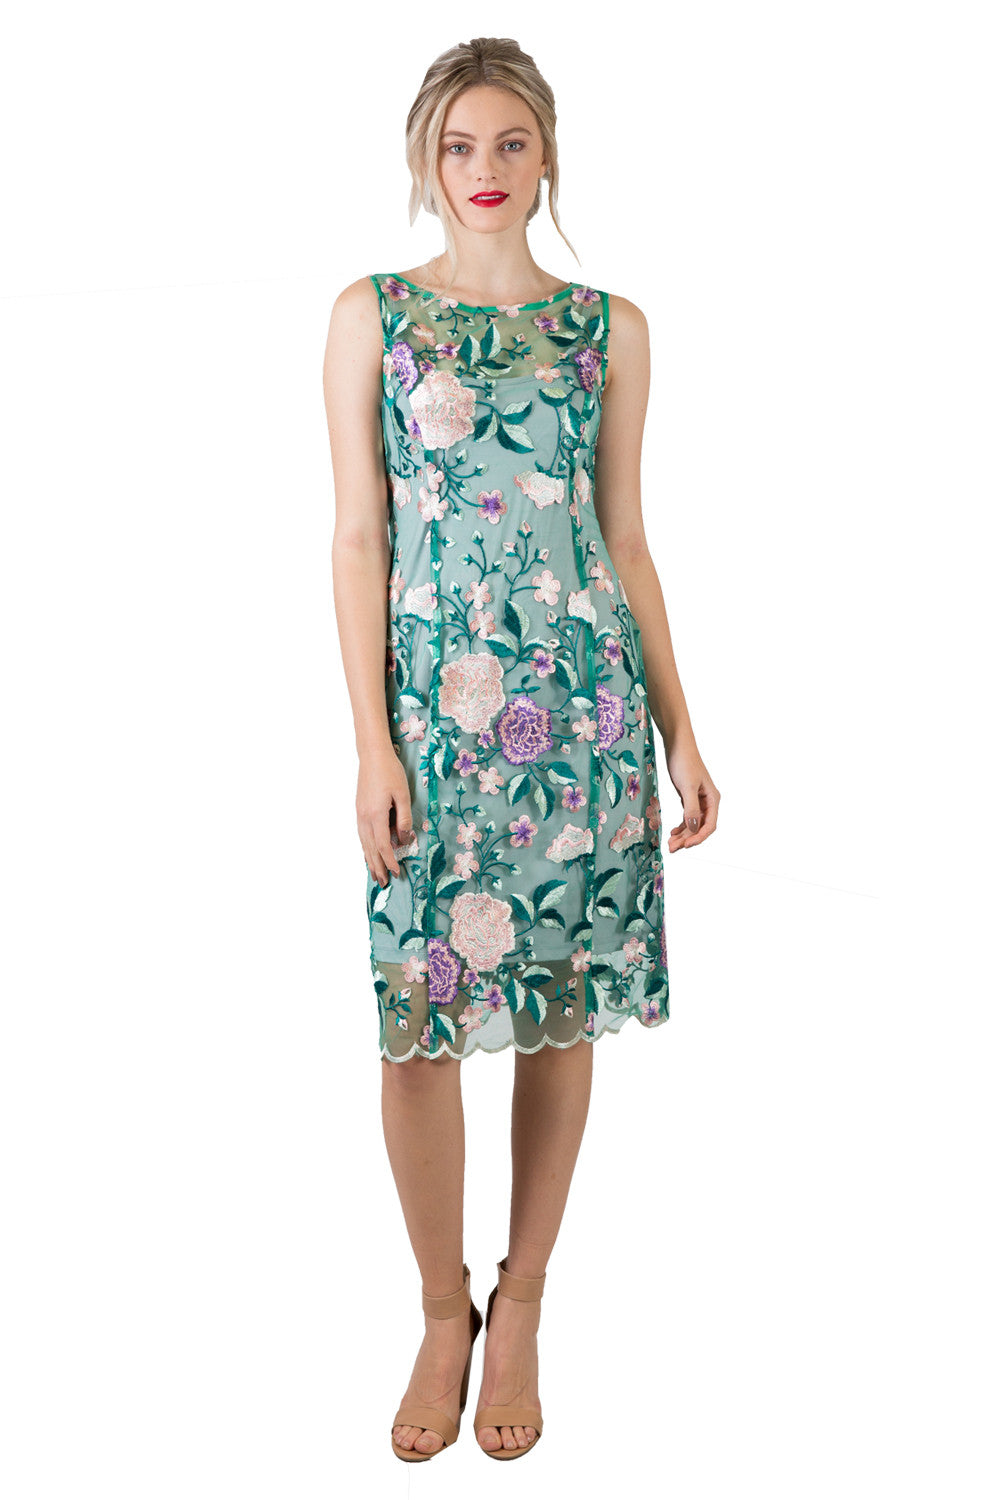 New Zealand | Occasion Dresses | Annah Stretton